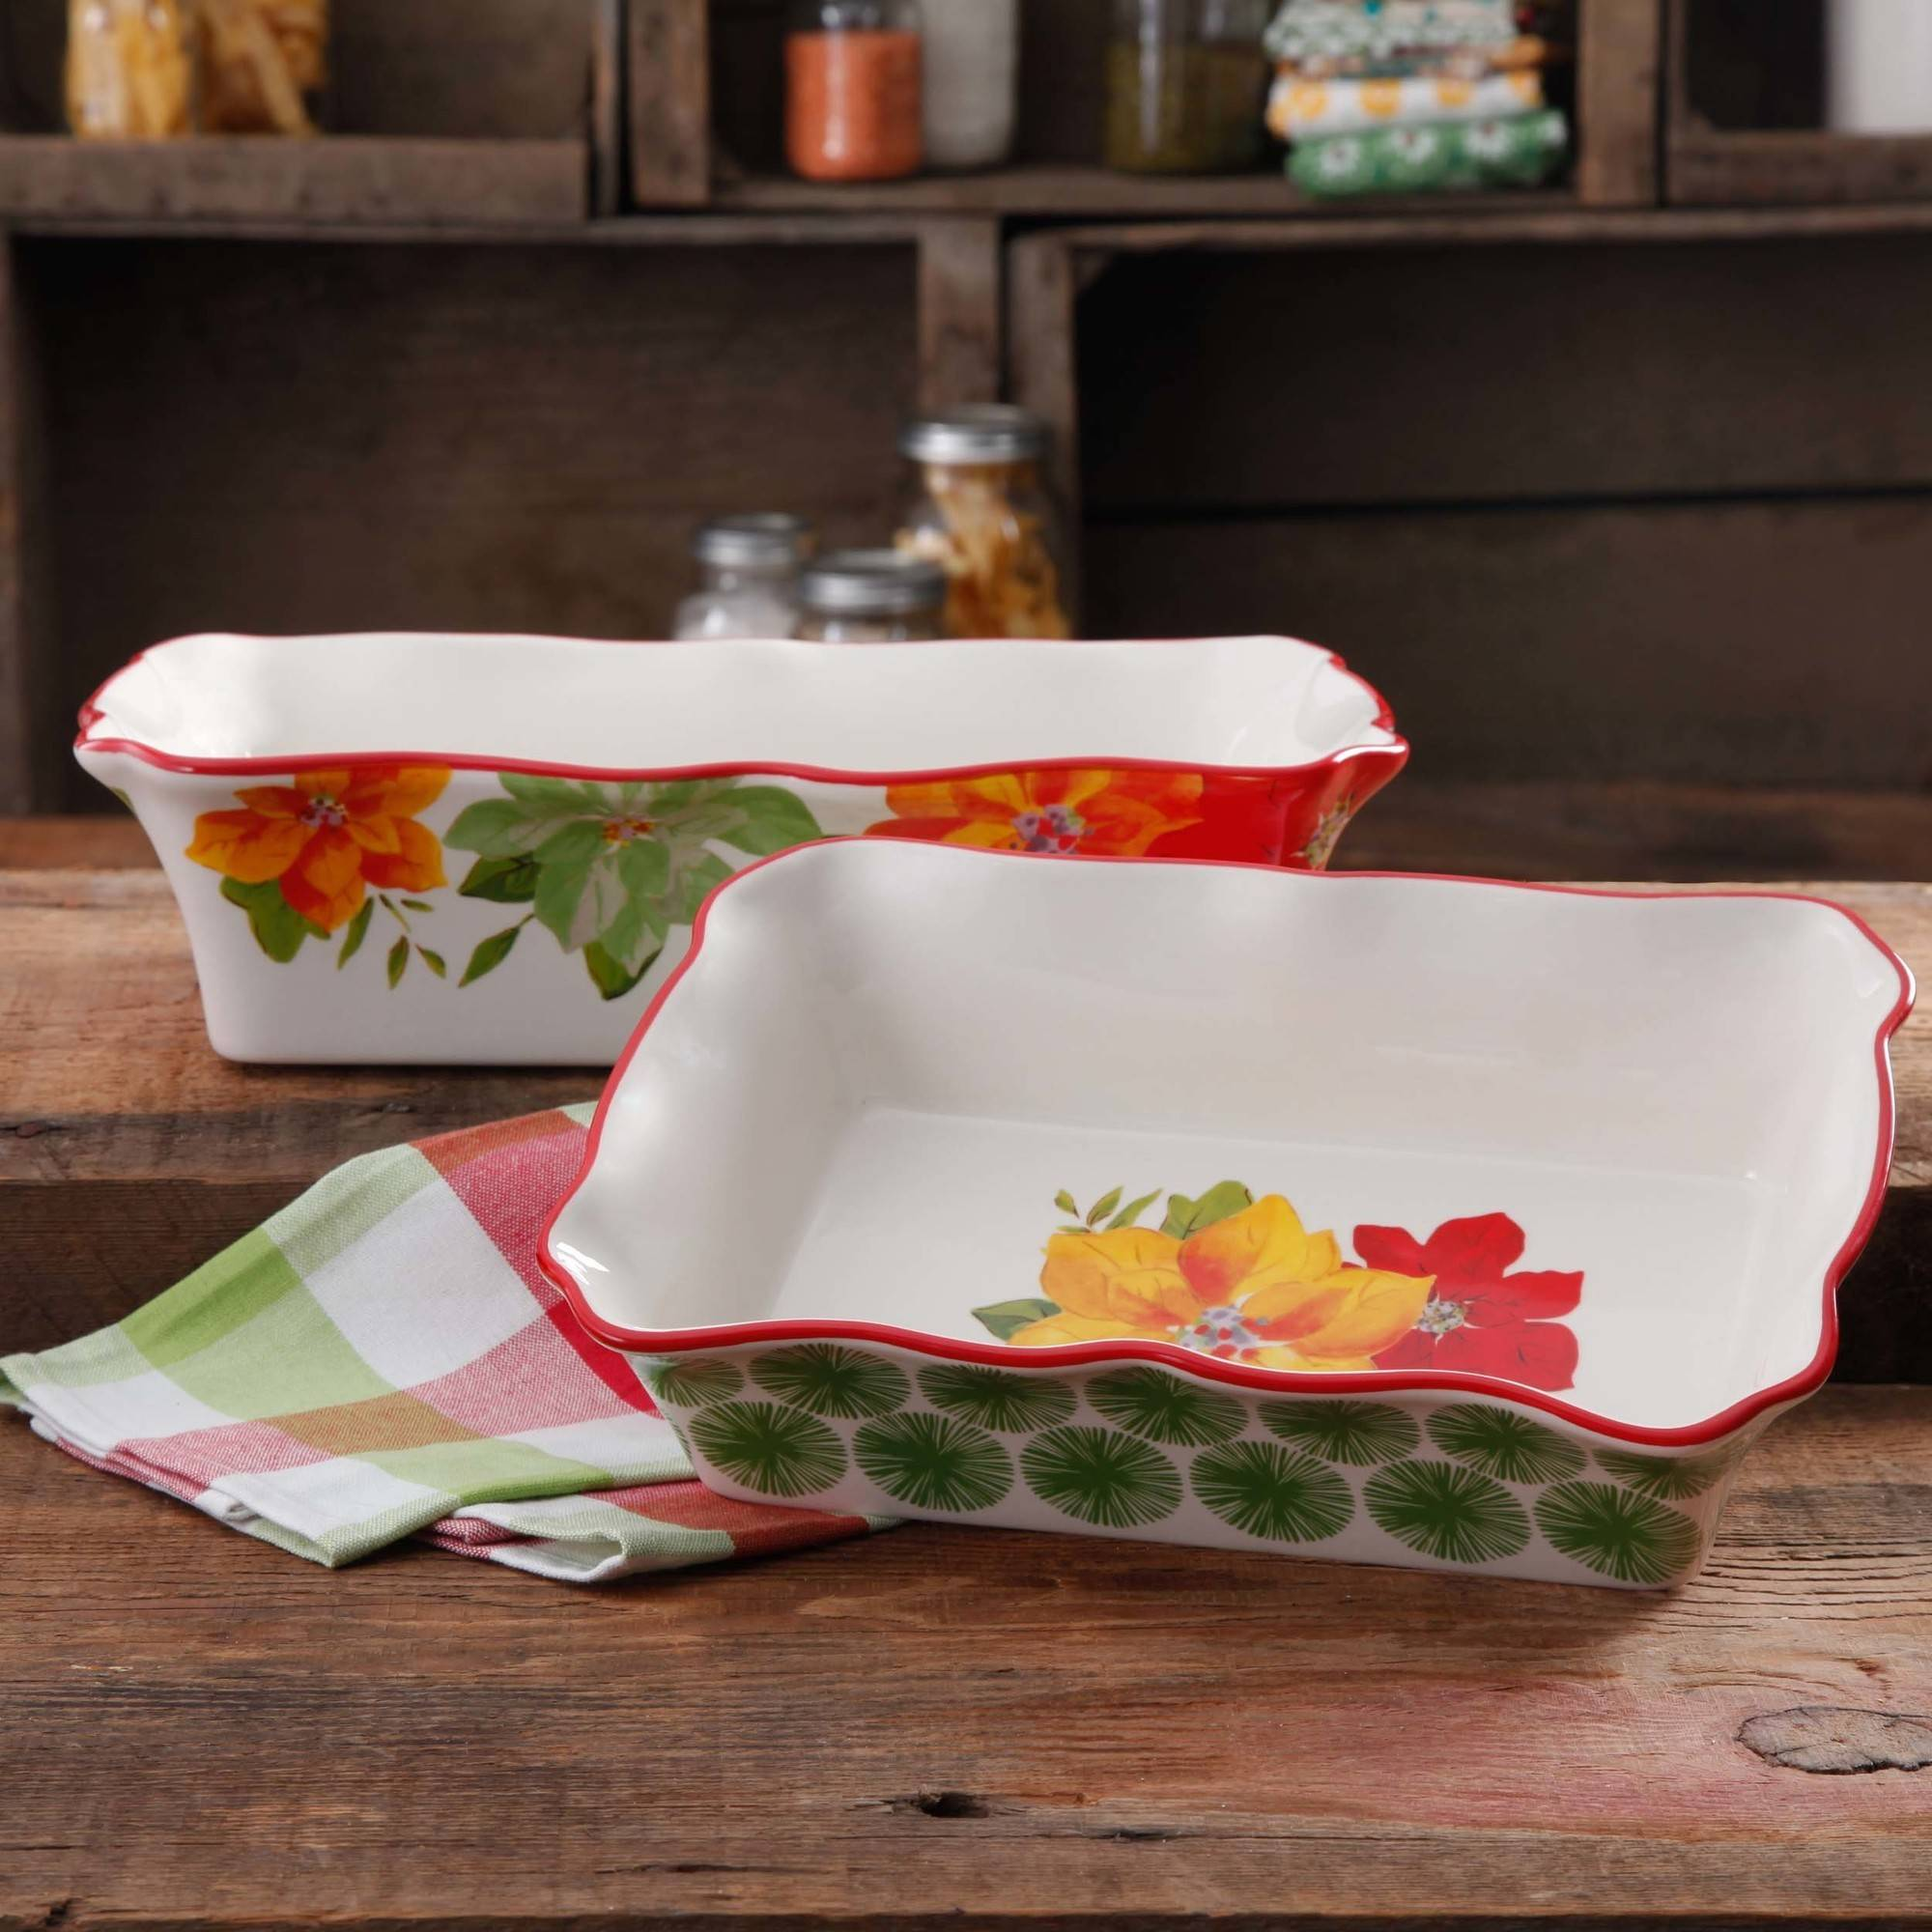 The Pioneer Woman Poinsettia 2-Piece Decorated Rectangular Ruffle-Top Bakeware Set